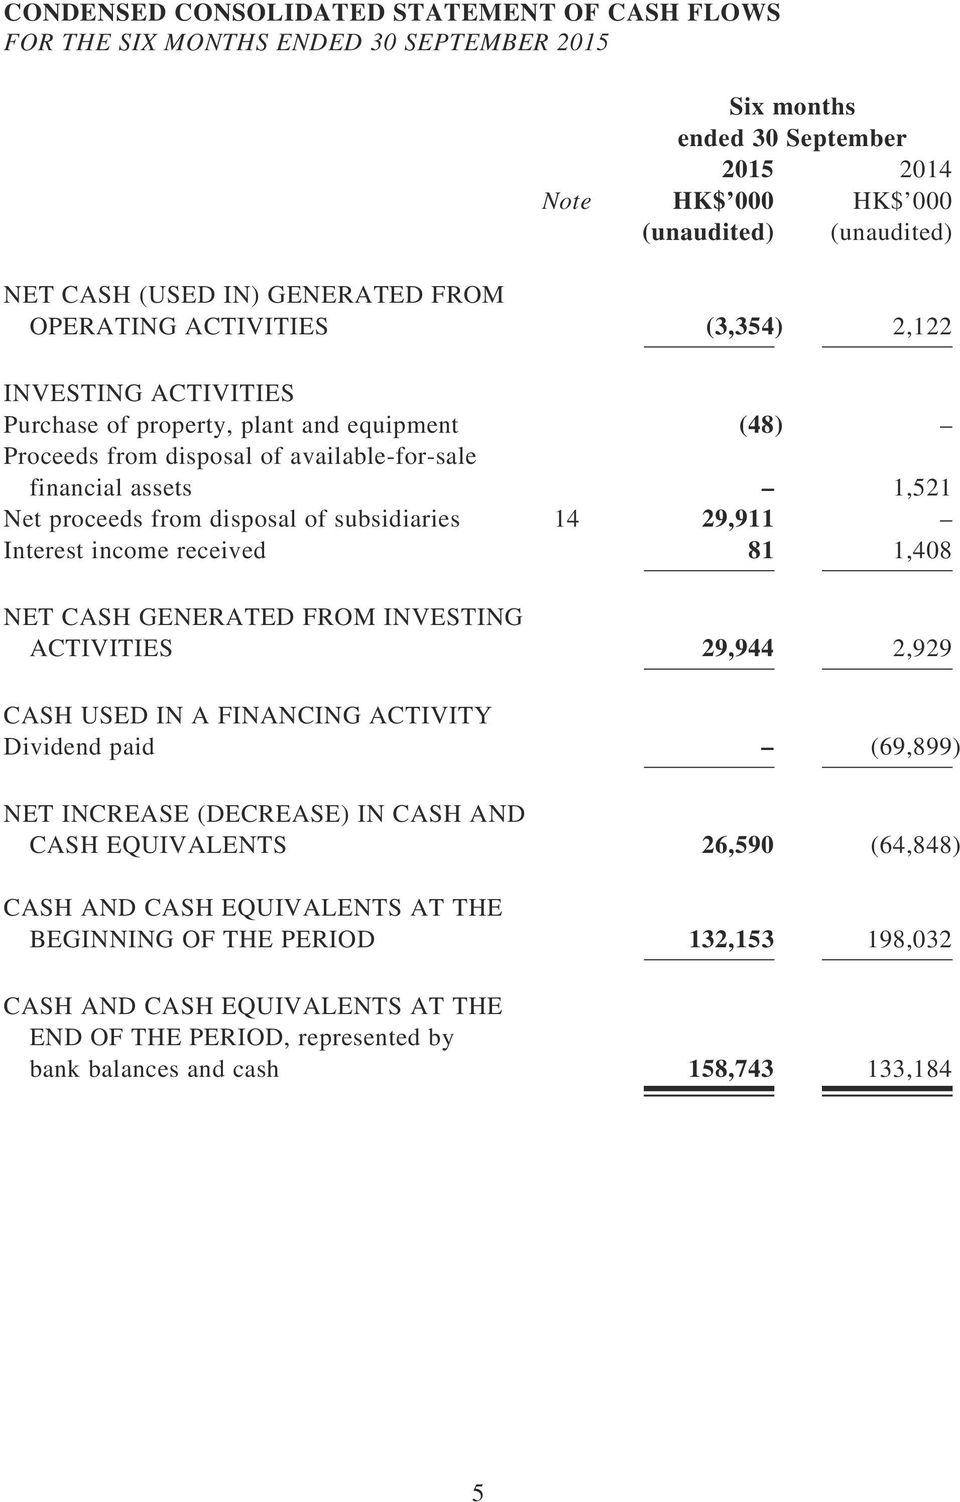 subsidiaries 14 29,911 Interest income received 81 1,408 NET CASH GENERATED FROM INVESTING ACTIVITIES 29,944 2,929 CASH USED IN A FINANCING ACTIVITY Dividend paid (69,899) NET INCREASE (DECREASE) IN